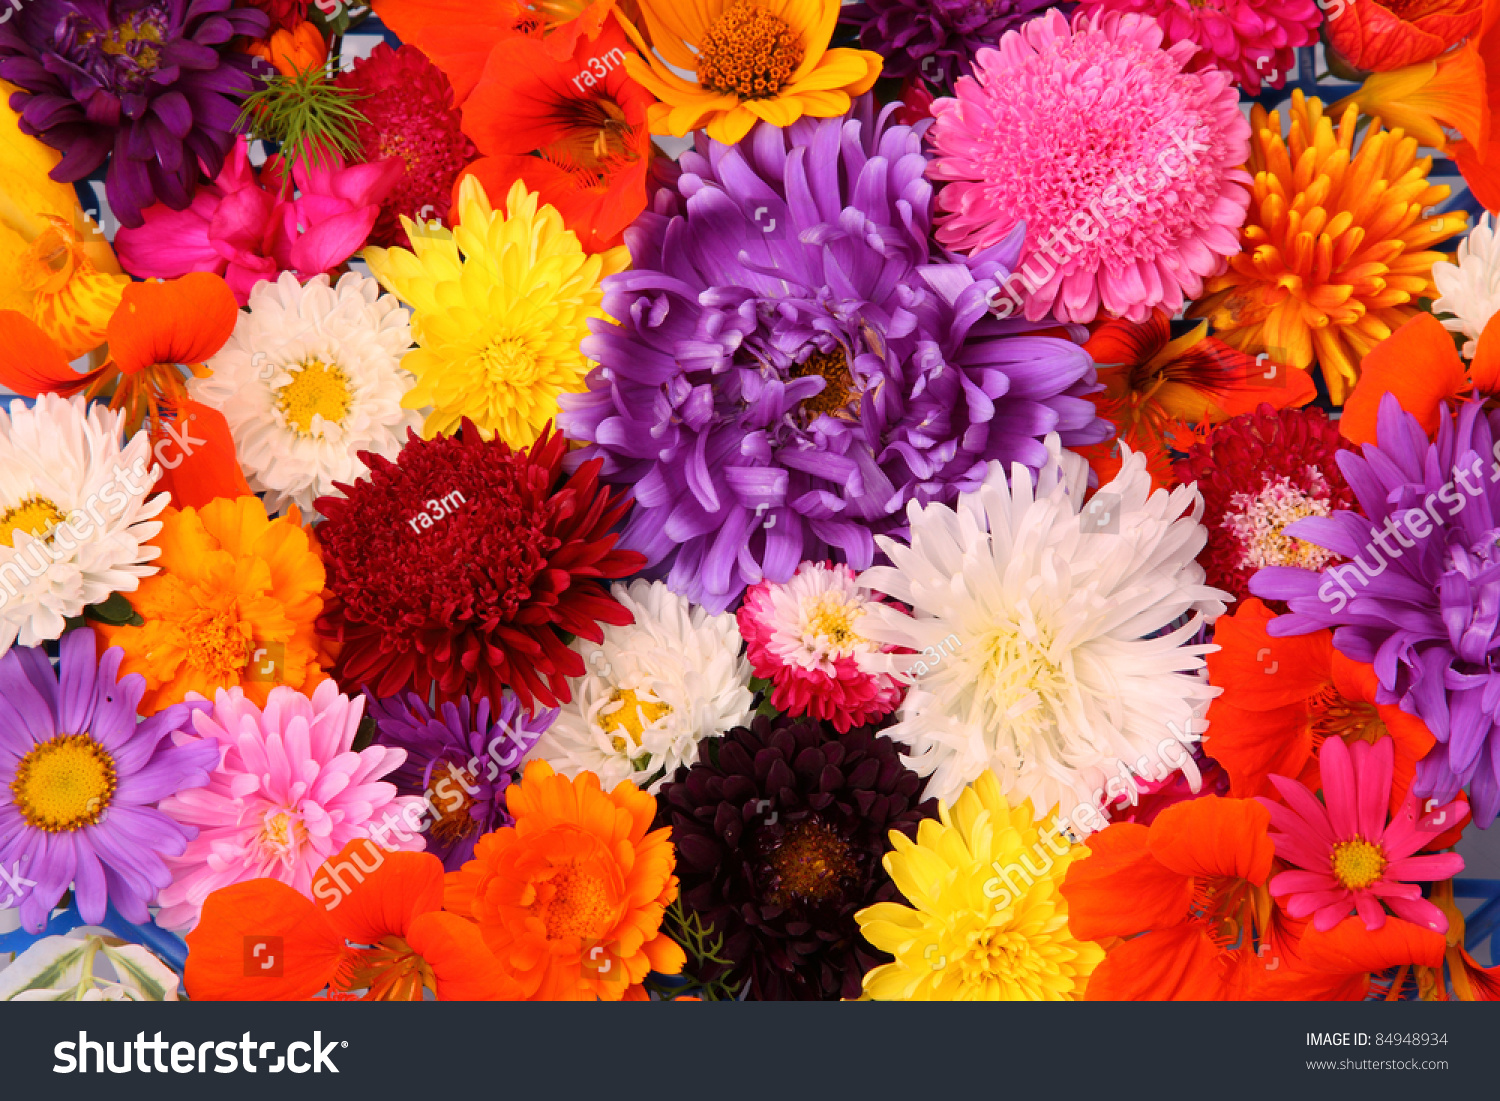 Autumn Flowers Different Colors Floral Background Stock Photo ...